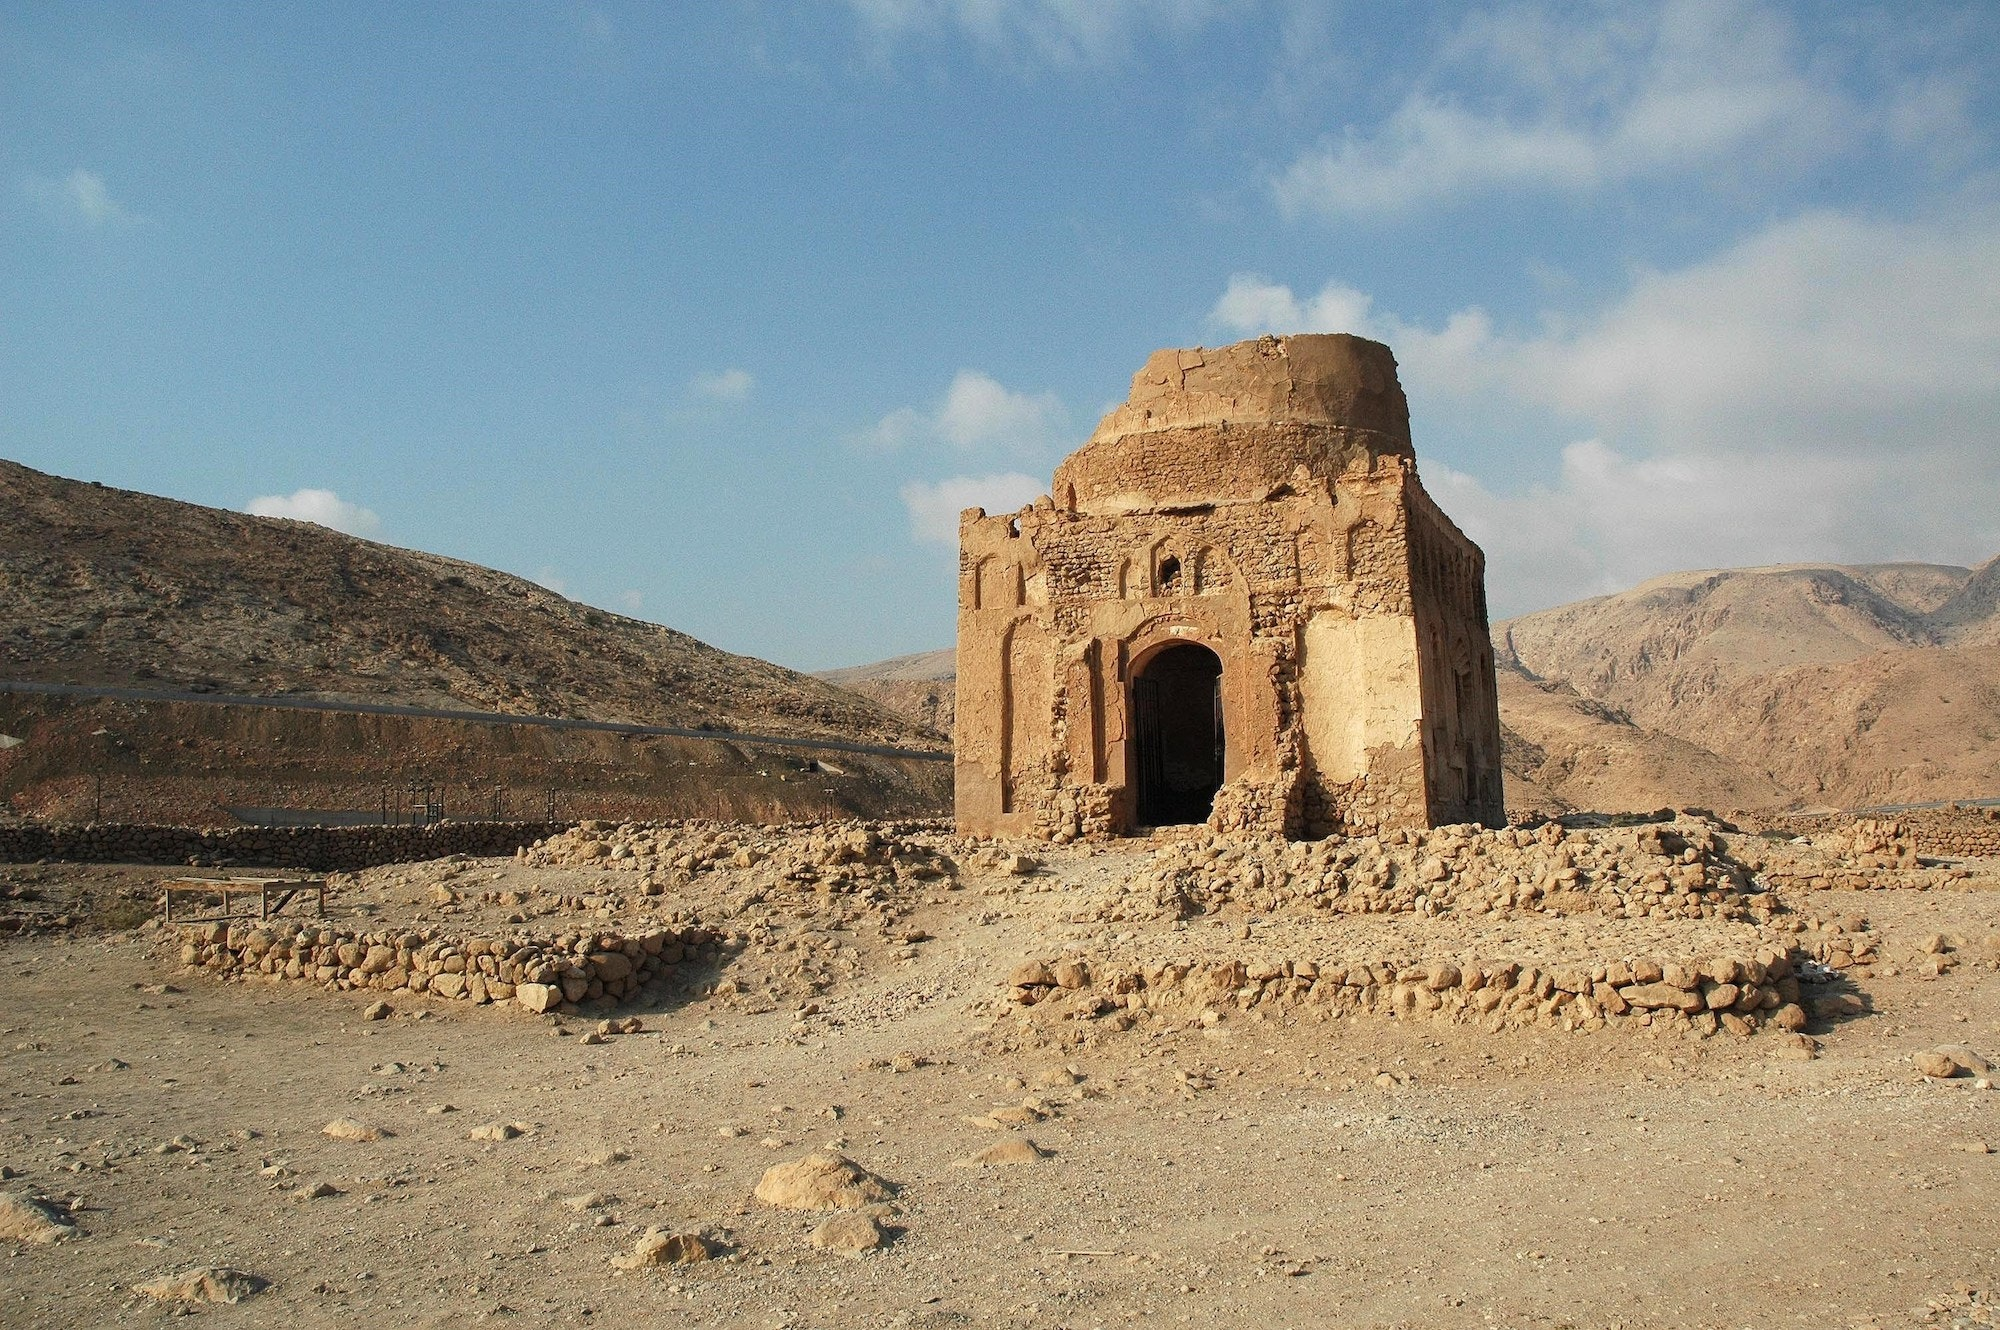 Today, very little of the Ancient City of Qalhat remains, save for the Bibi Maryam Mausoleum.